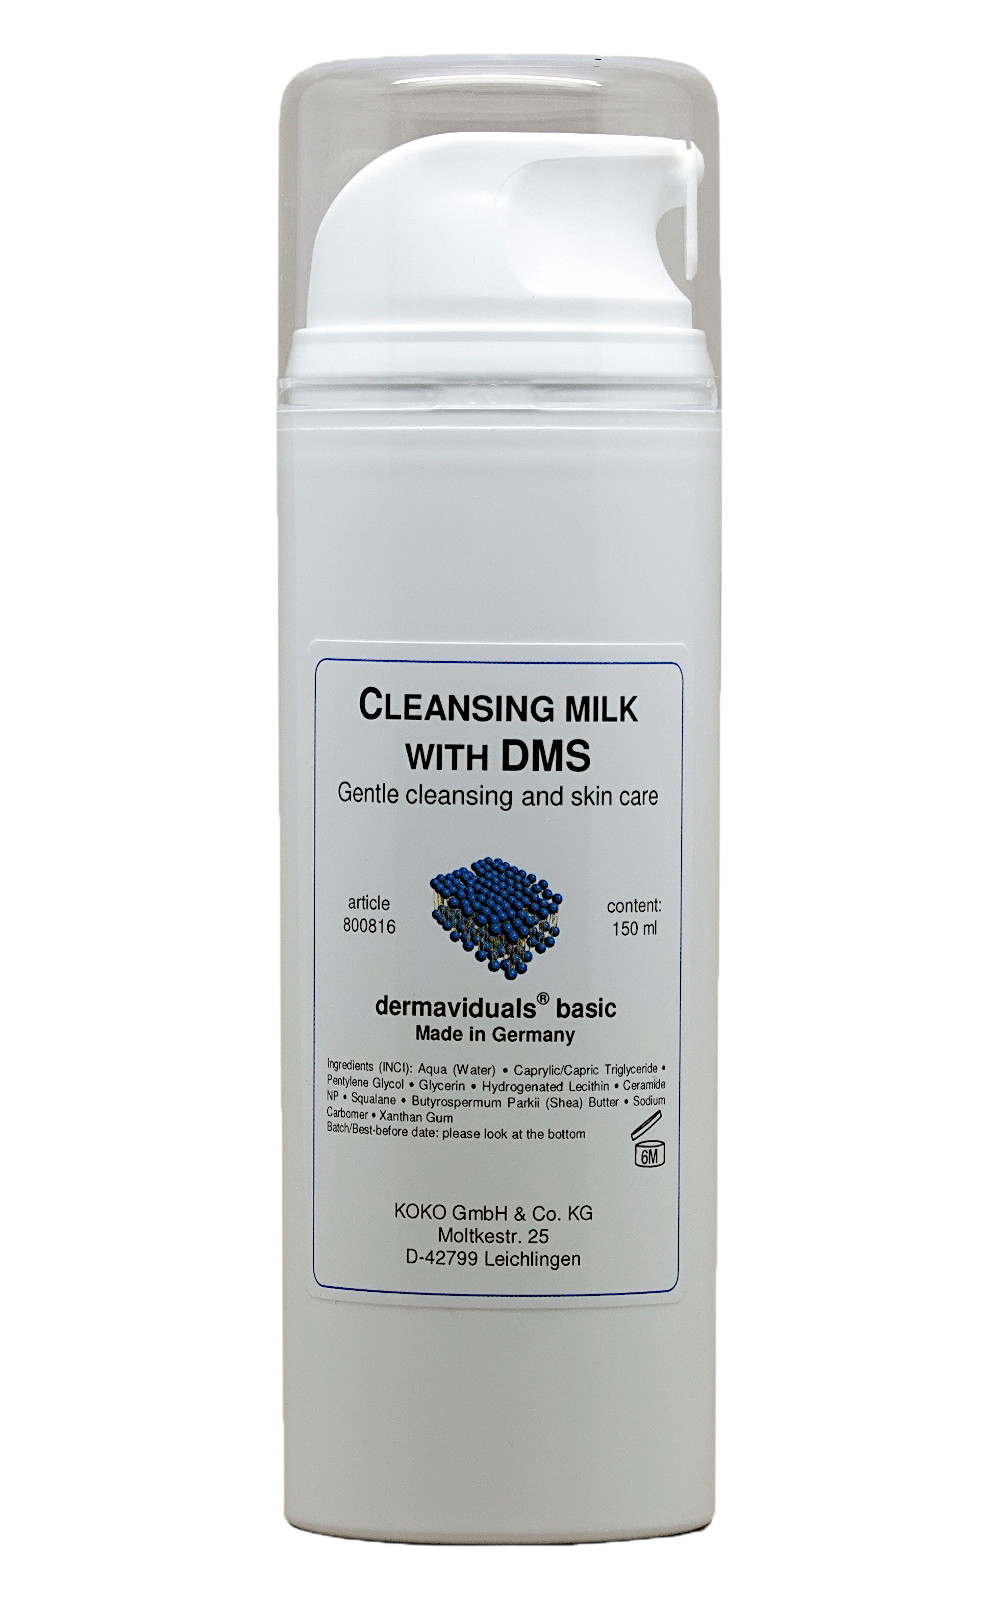 Cleansing Milk with DMS